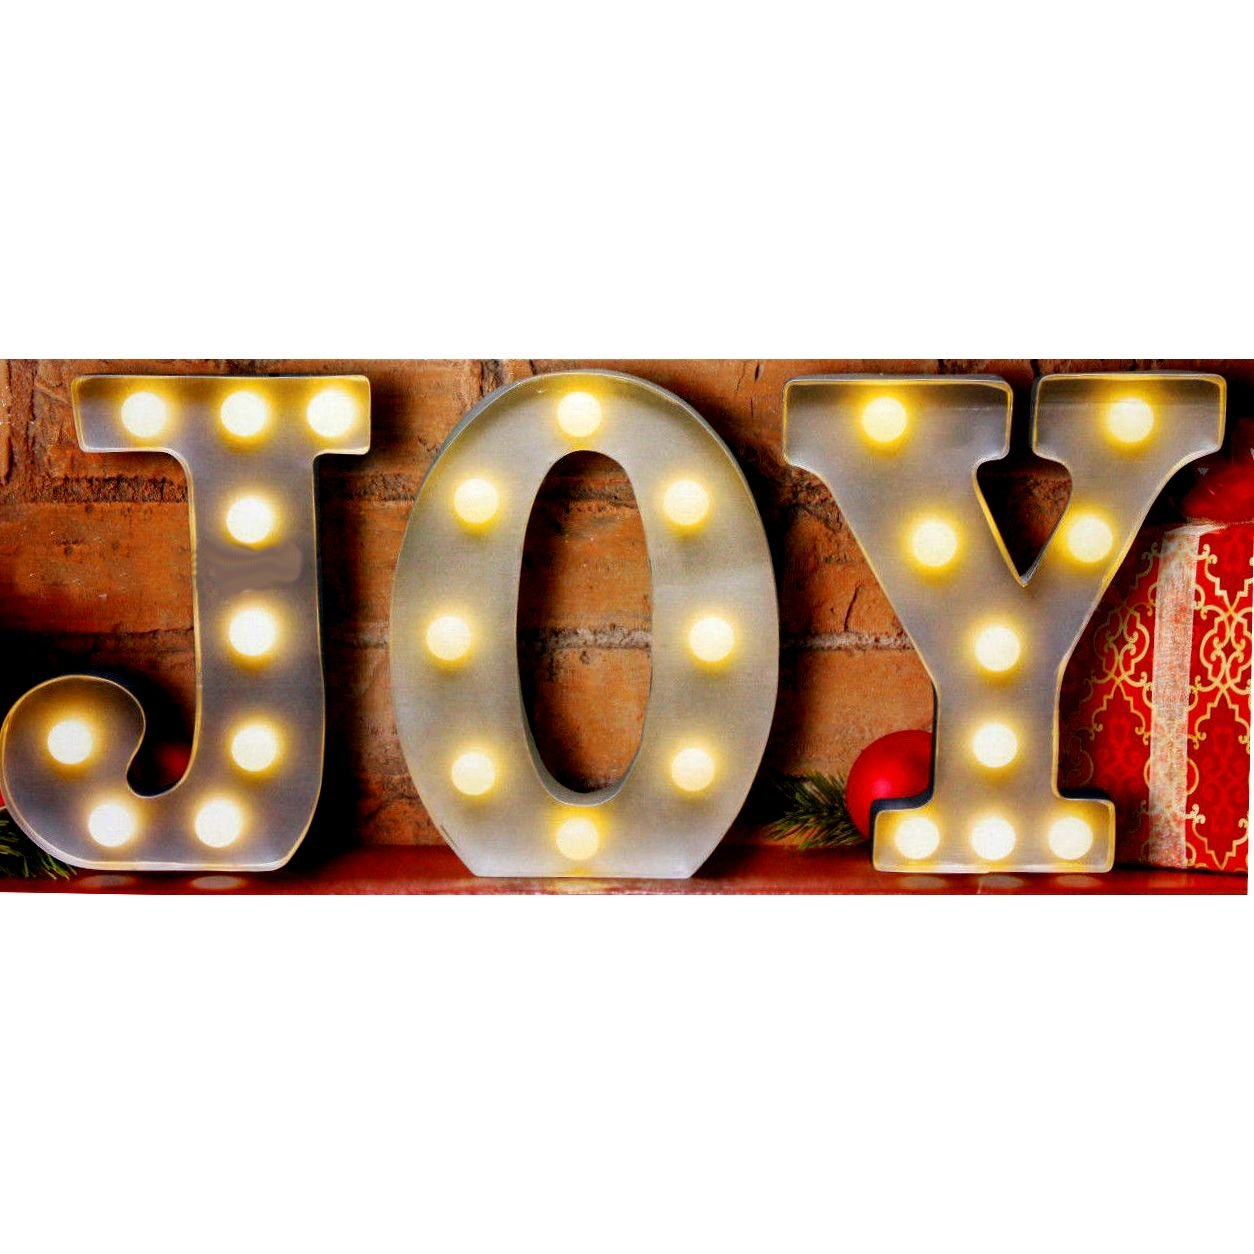 Amazon.com: JOY - LED Illuminated Vintage Marquee Metal Sign ...